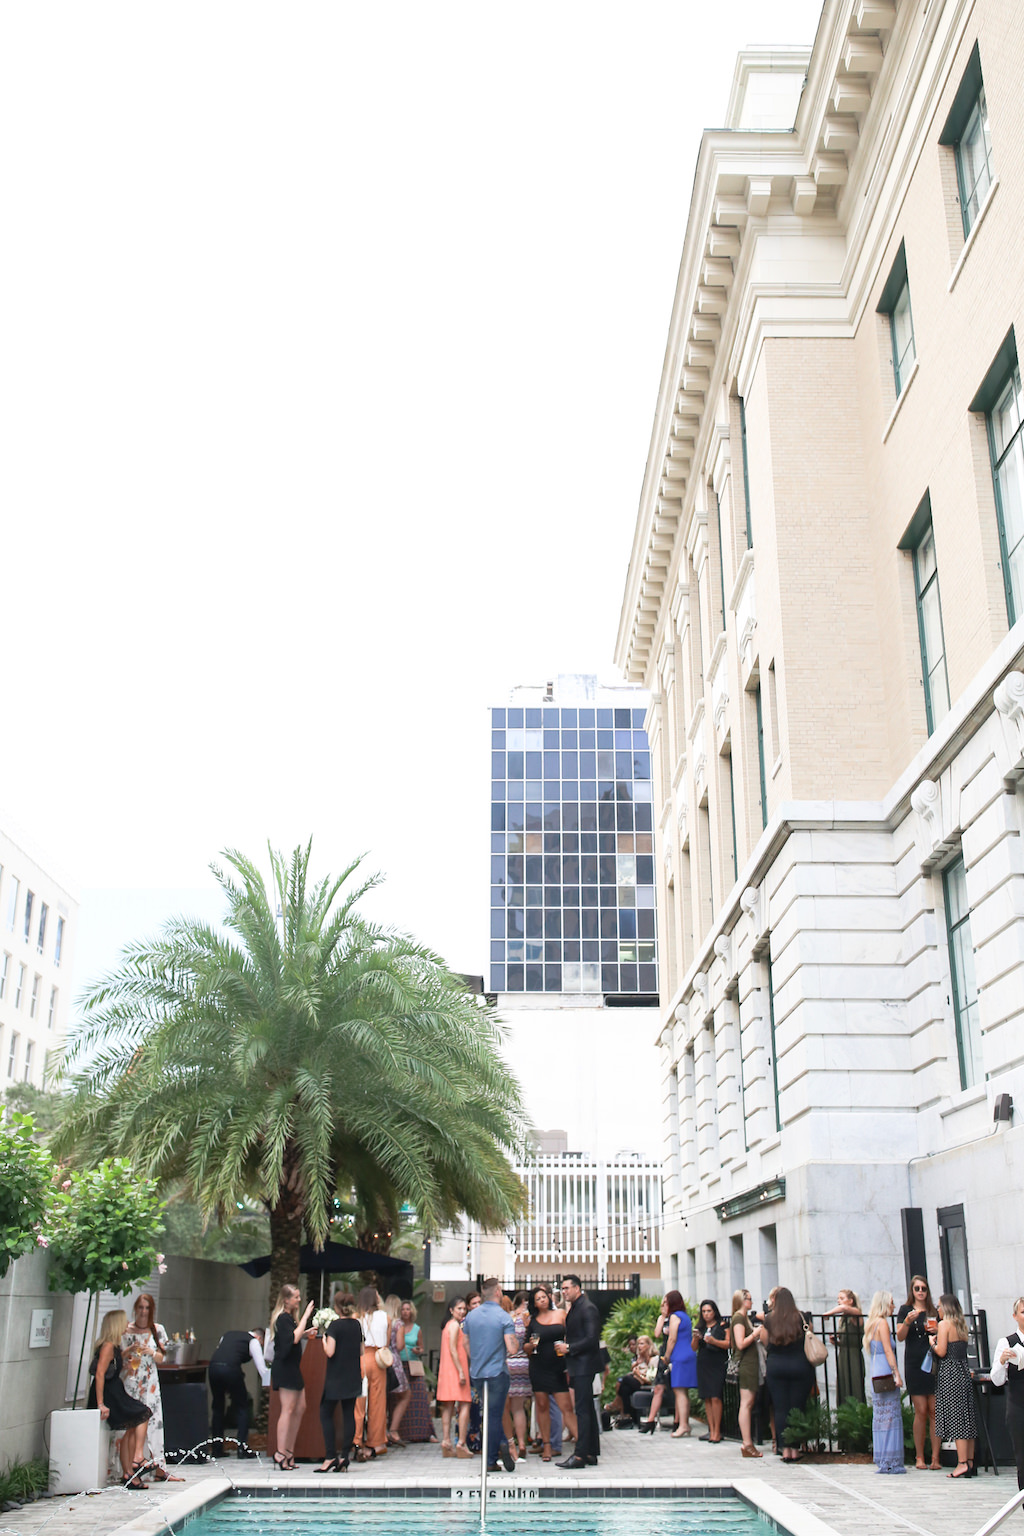 Historic Downtown Wedding Venue Le Meridien   Marry Me Tampa Bay and Isabel O'Neil Bridal Fashion Runway Show 2018   Tampa Wedding Photographer Lifelong Photography Studios